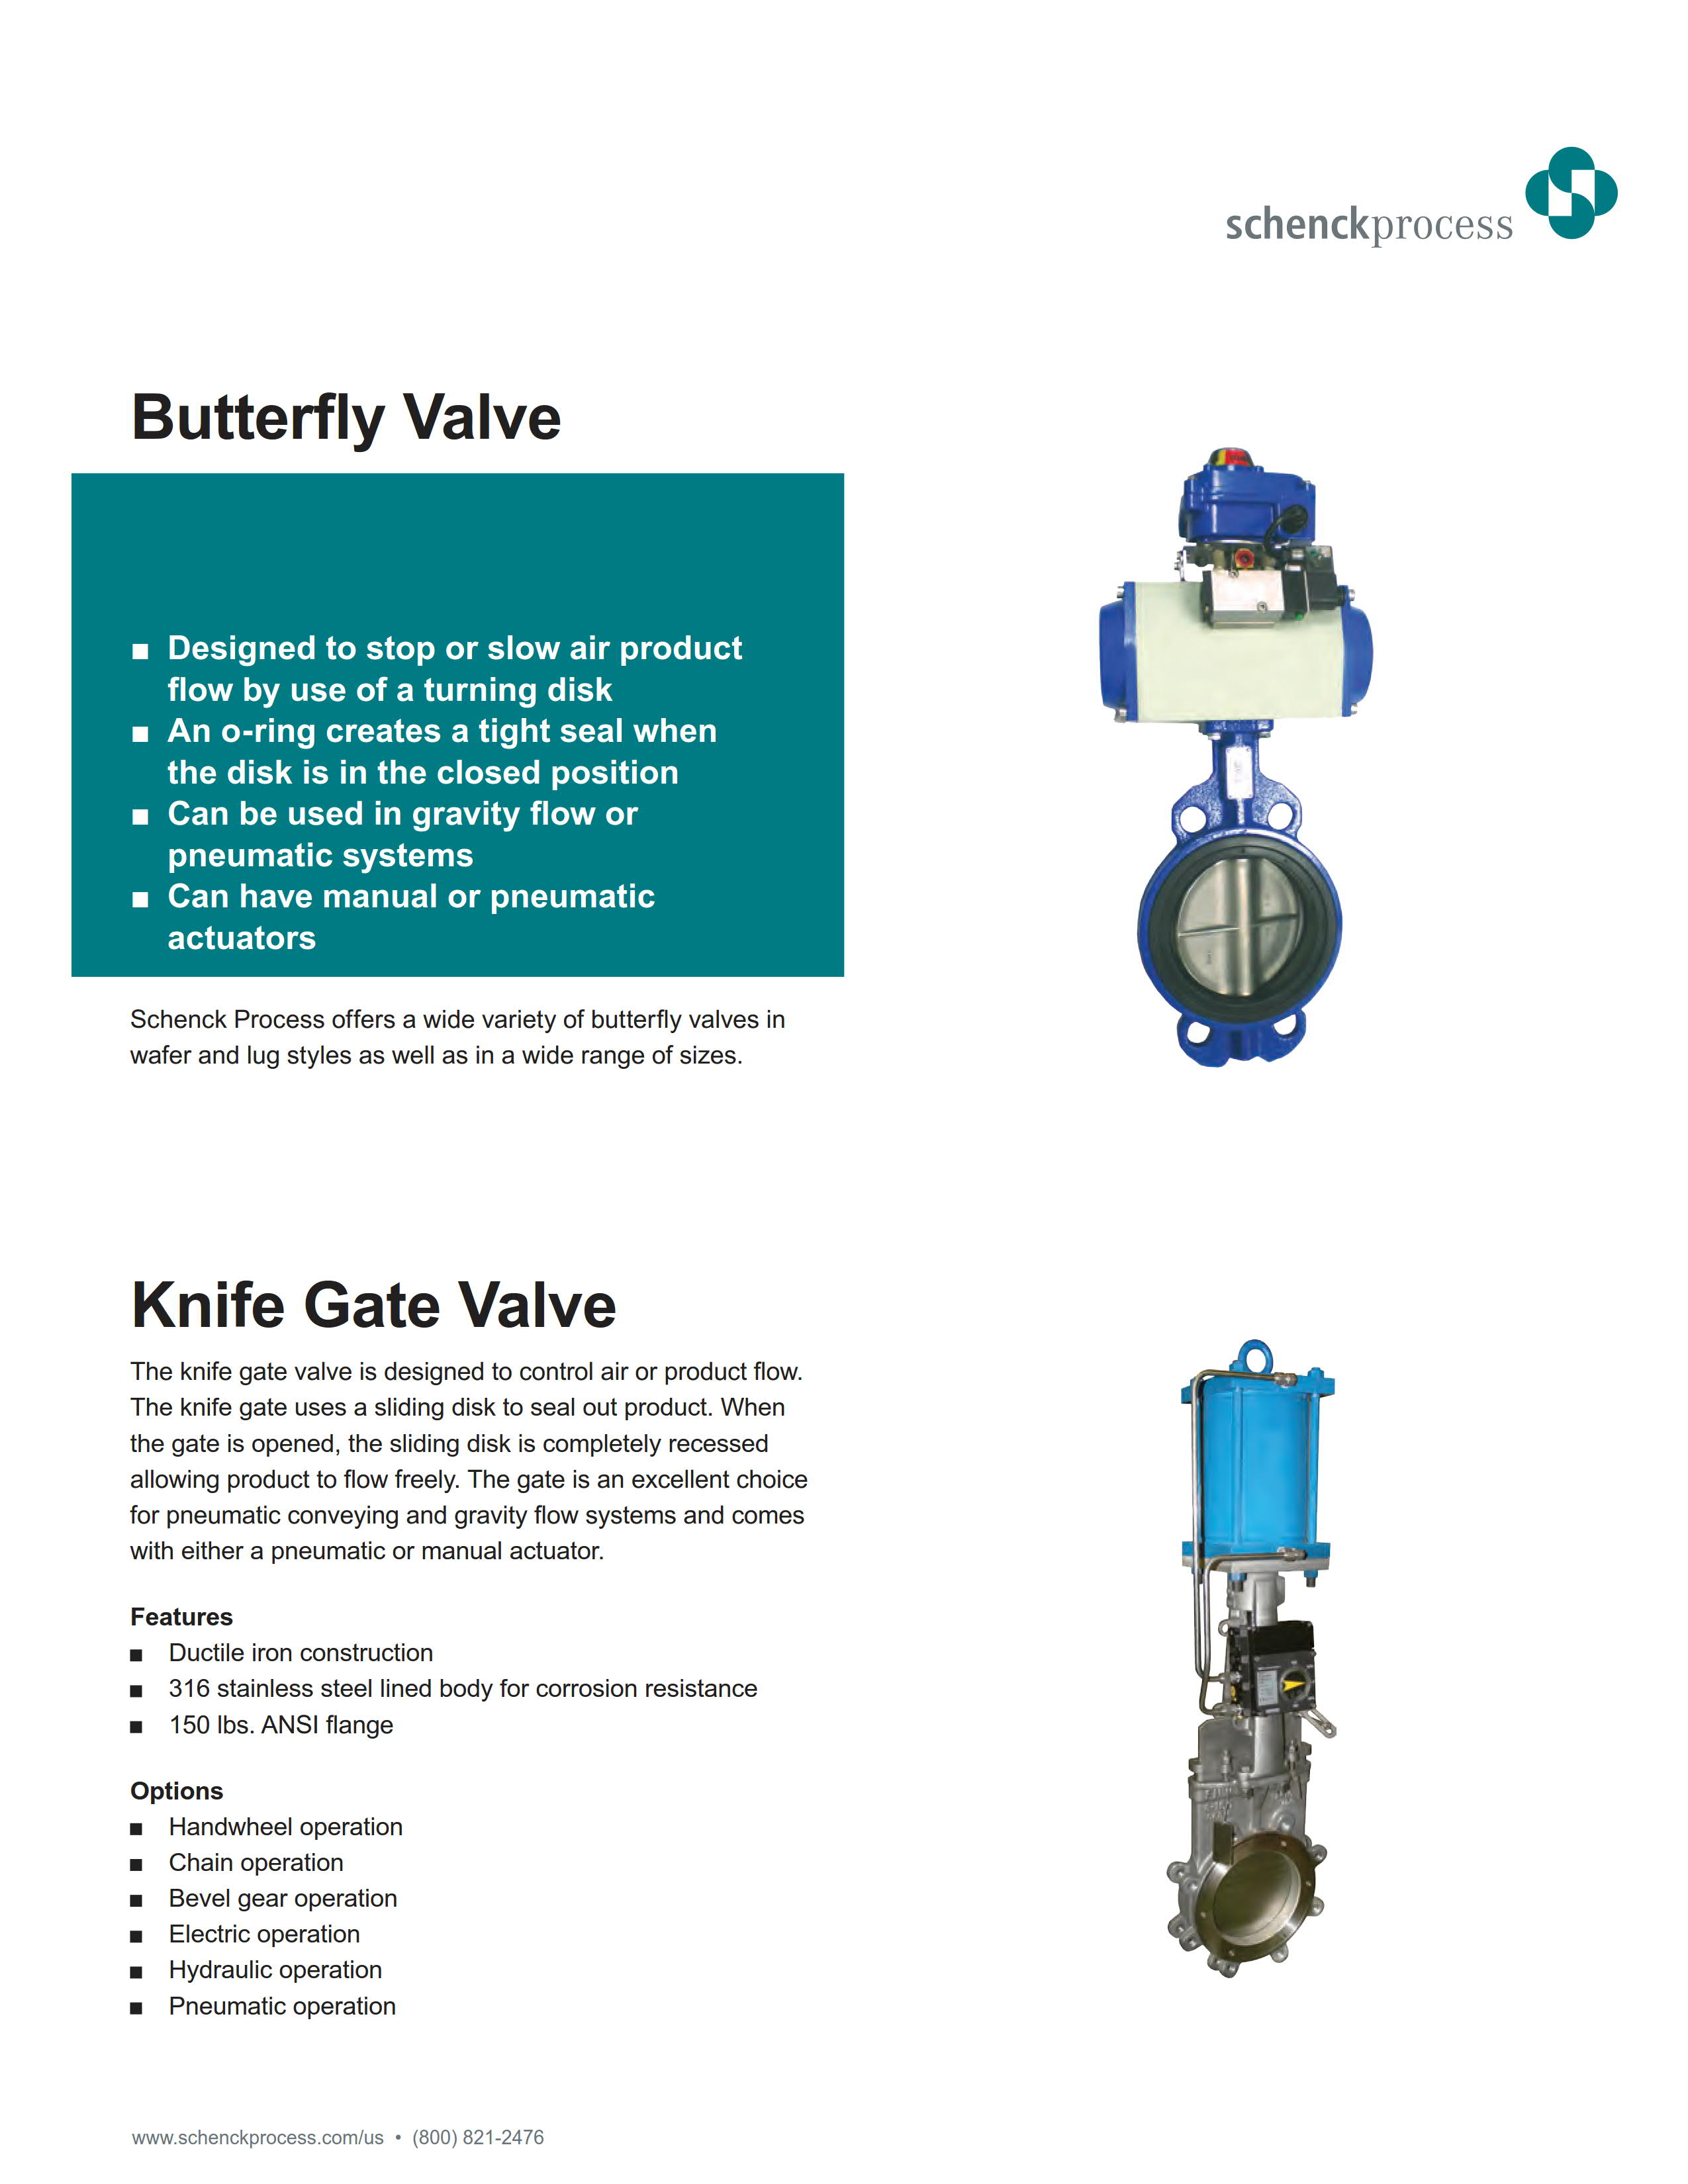 Butterfly Valve and Knife Gate Valve